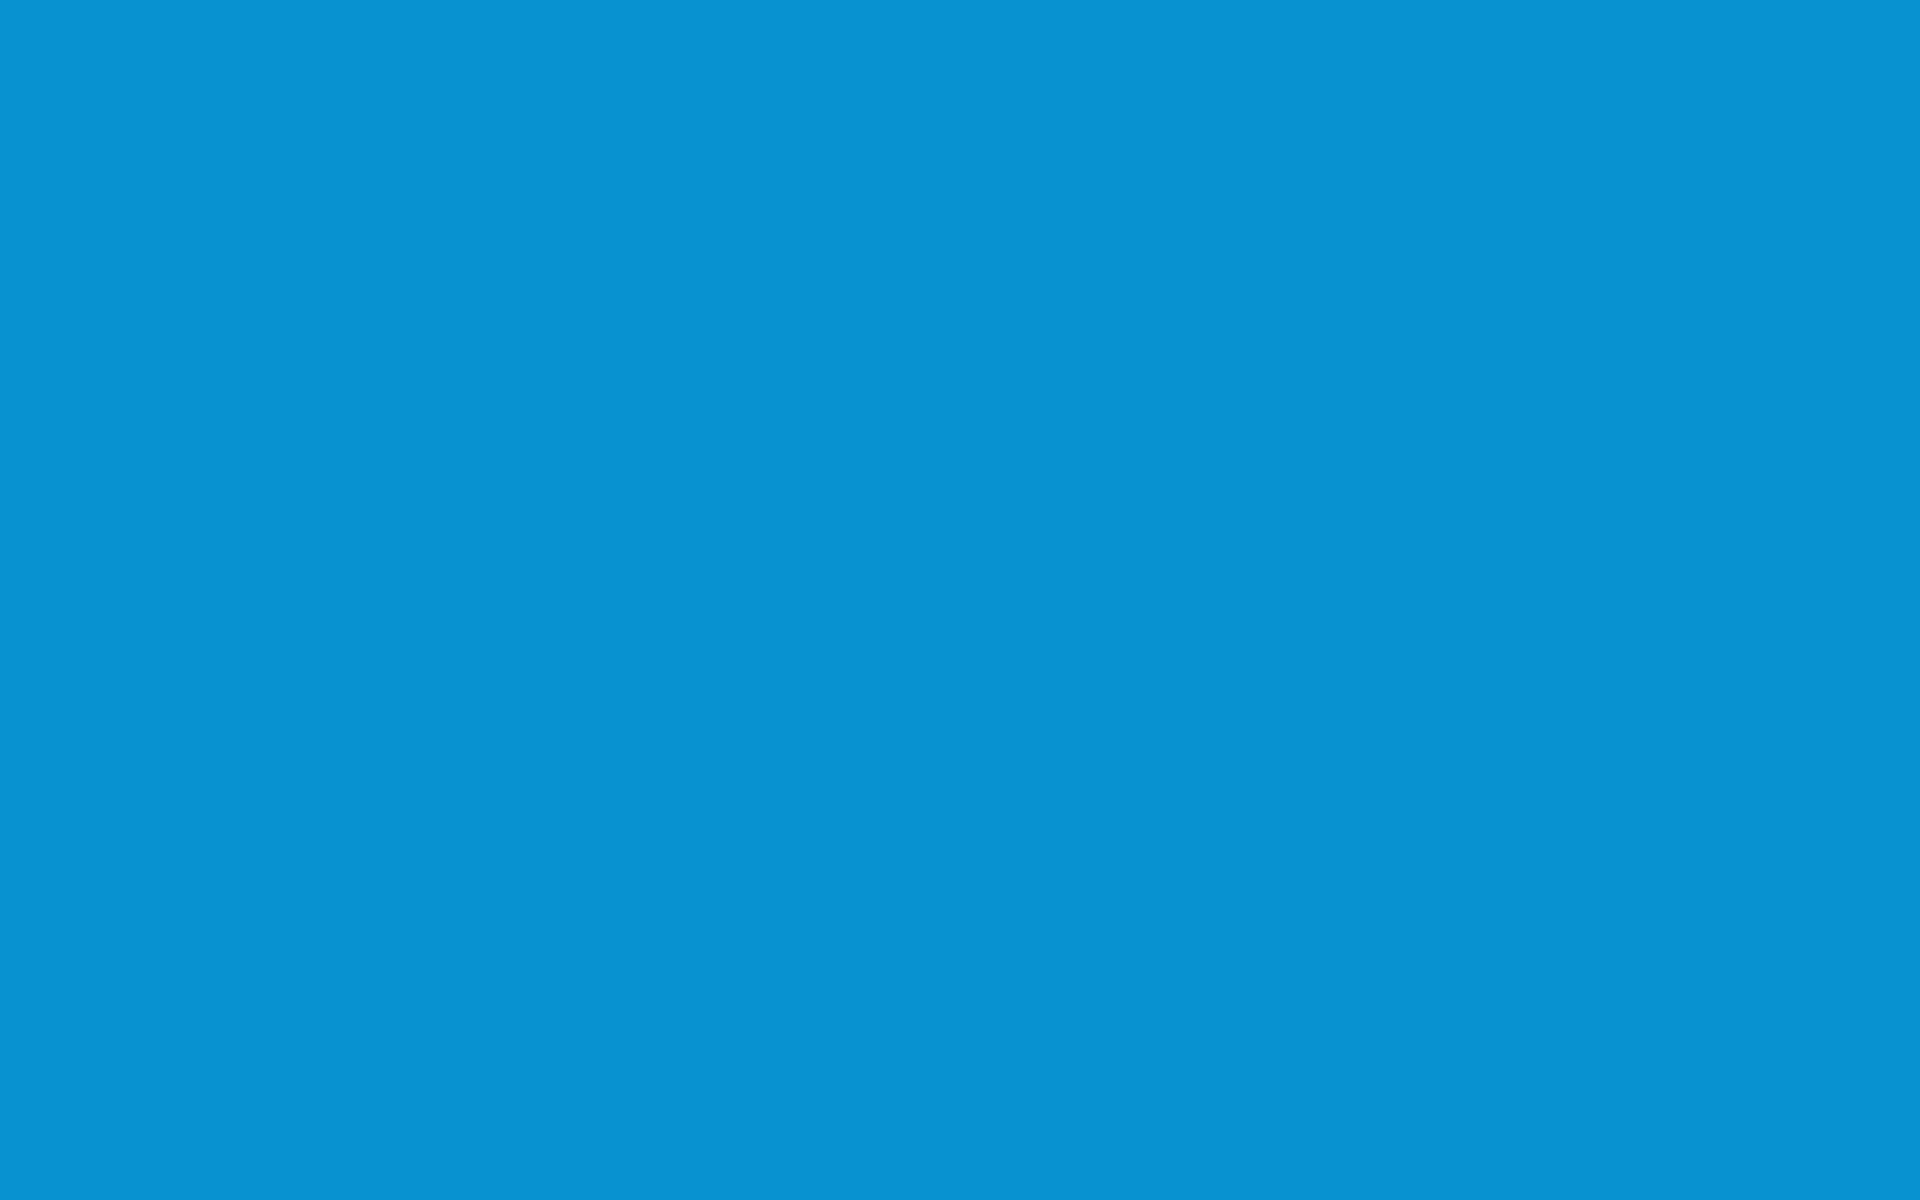 1920x1200 Rich Electric Blue Solid Color Background